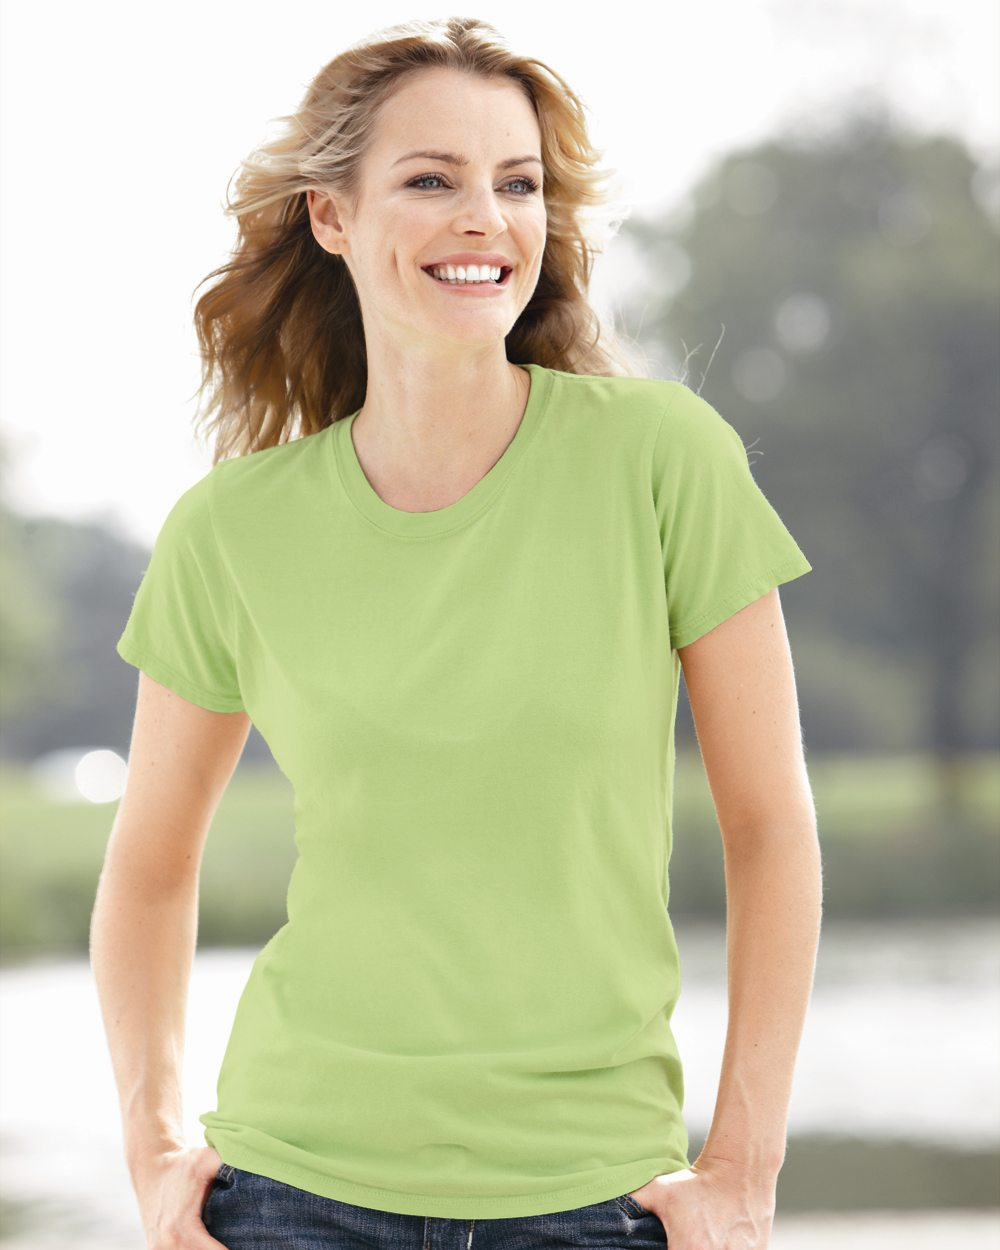 02ae5b3c2 Comfort Colors 4200 - Ladies' Pigment Dyed Ringspun Short Sleeve Crewneck T- Shirt $6.25 - Women's T-Shirts